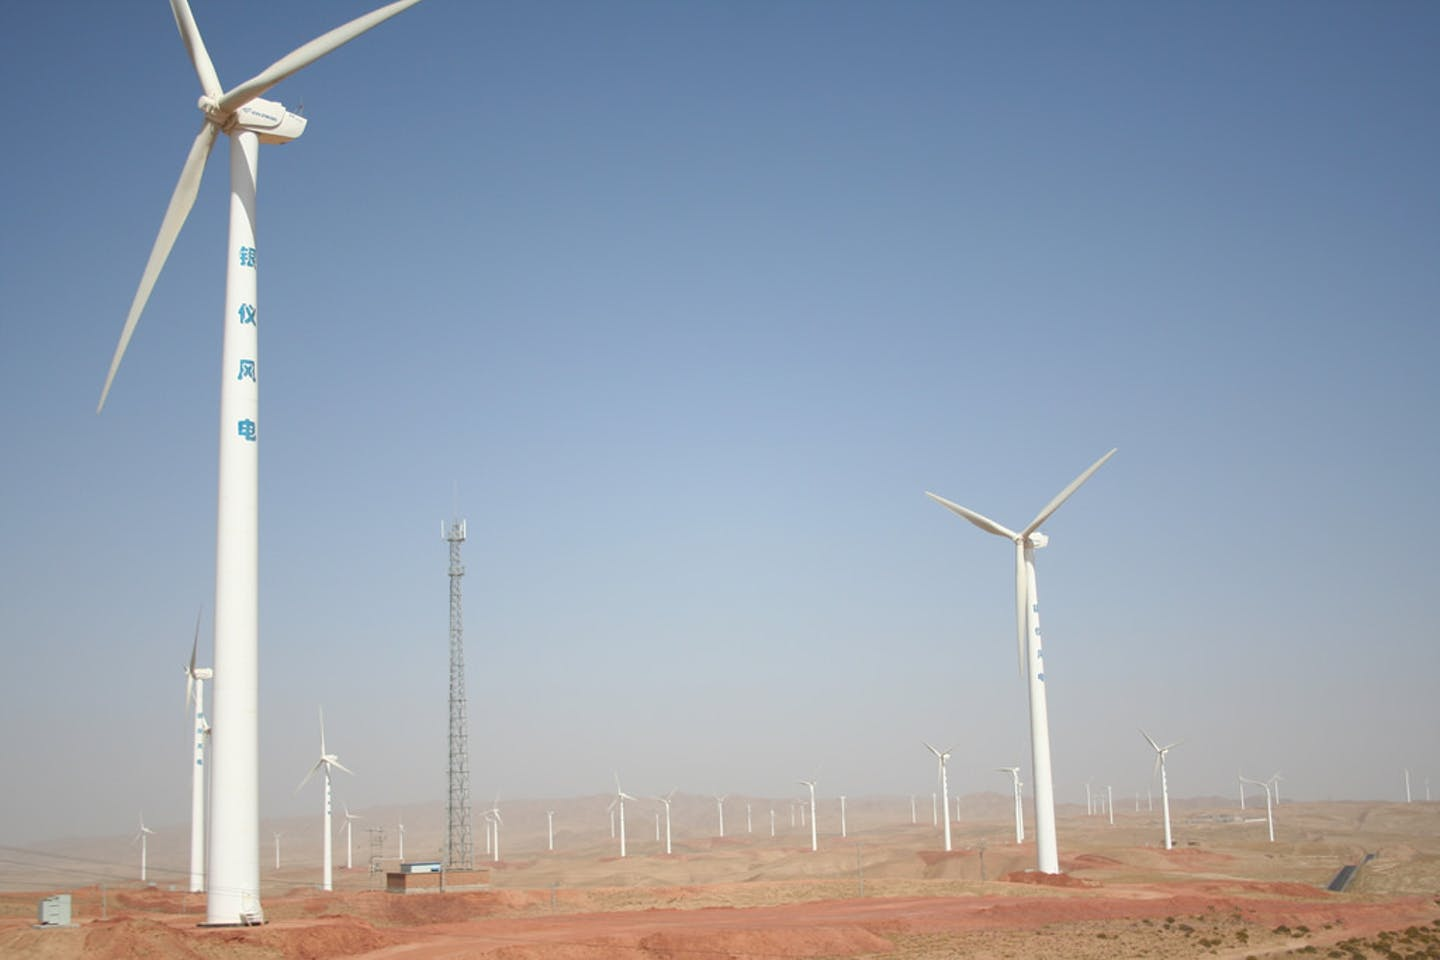 Wind turbines on a solar farm in Ningxia Province in Northern China